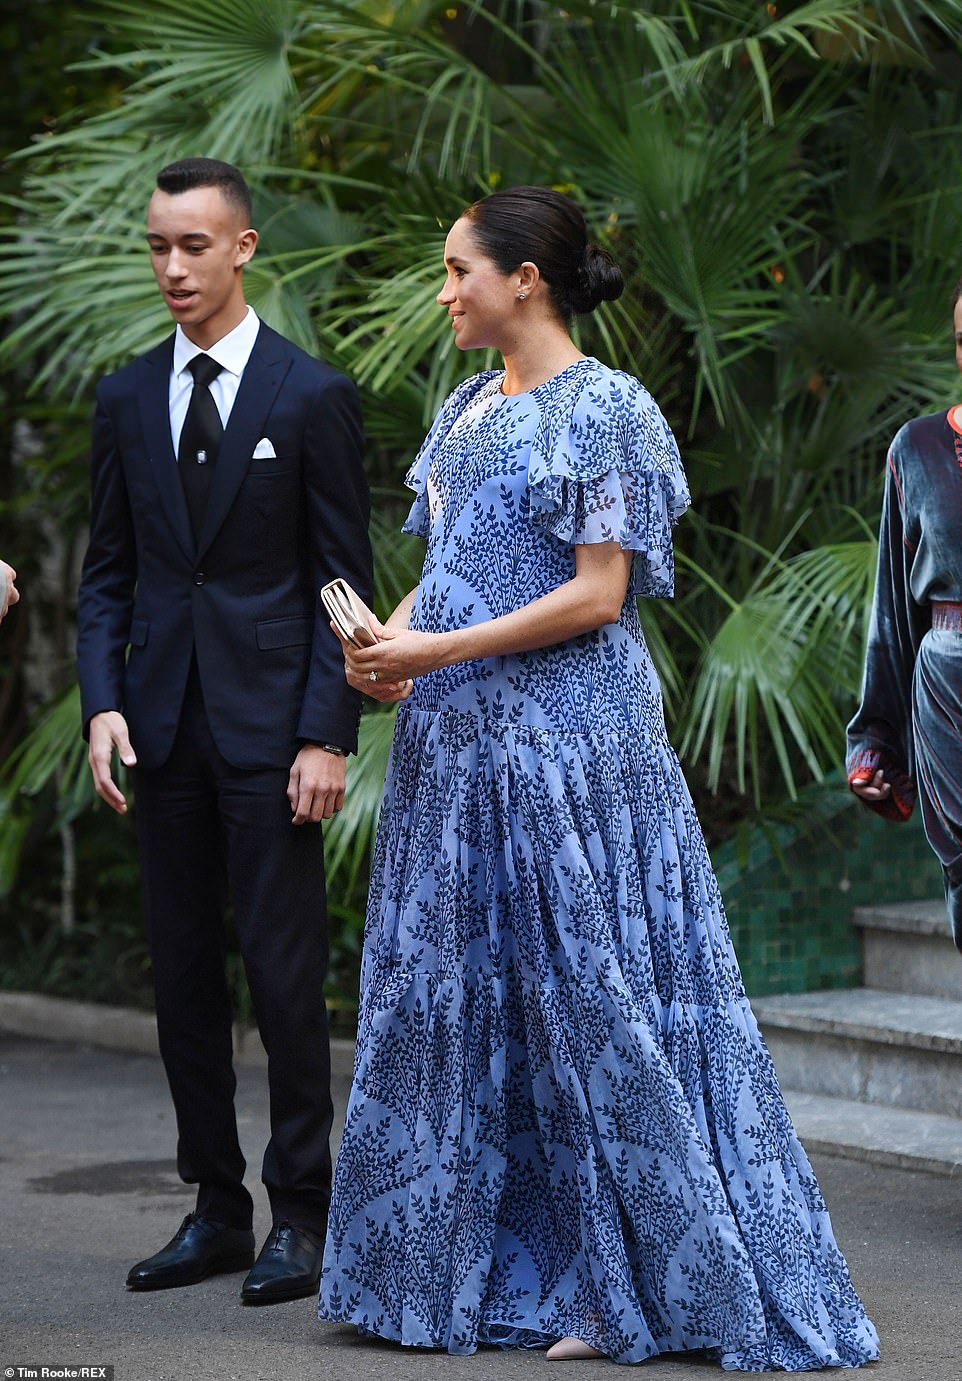 Meghan's bump was on full display in the flowing Carolina Herrera gown. The Duchess of Sussex recently revealed to a member of the public that her first child with Prince Harry is due in 'late April or early May'